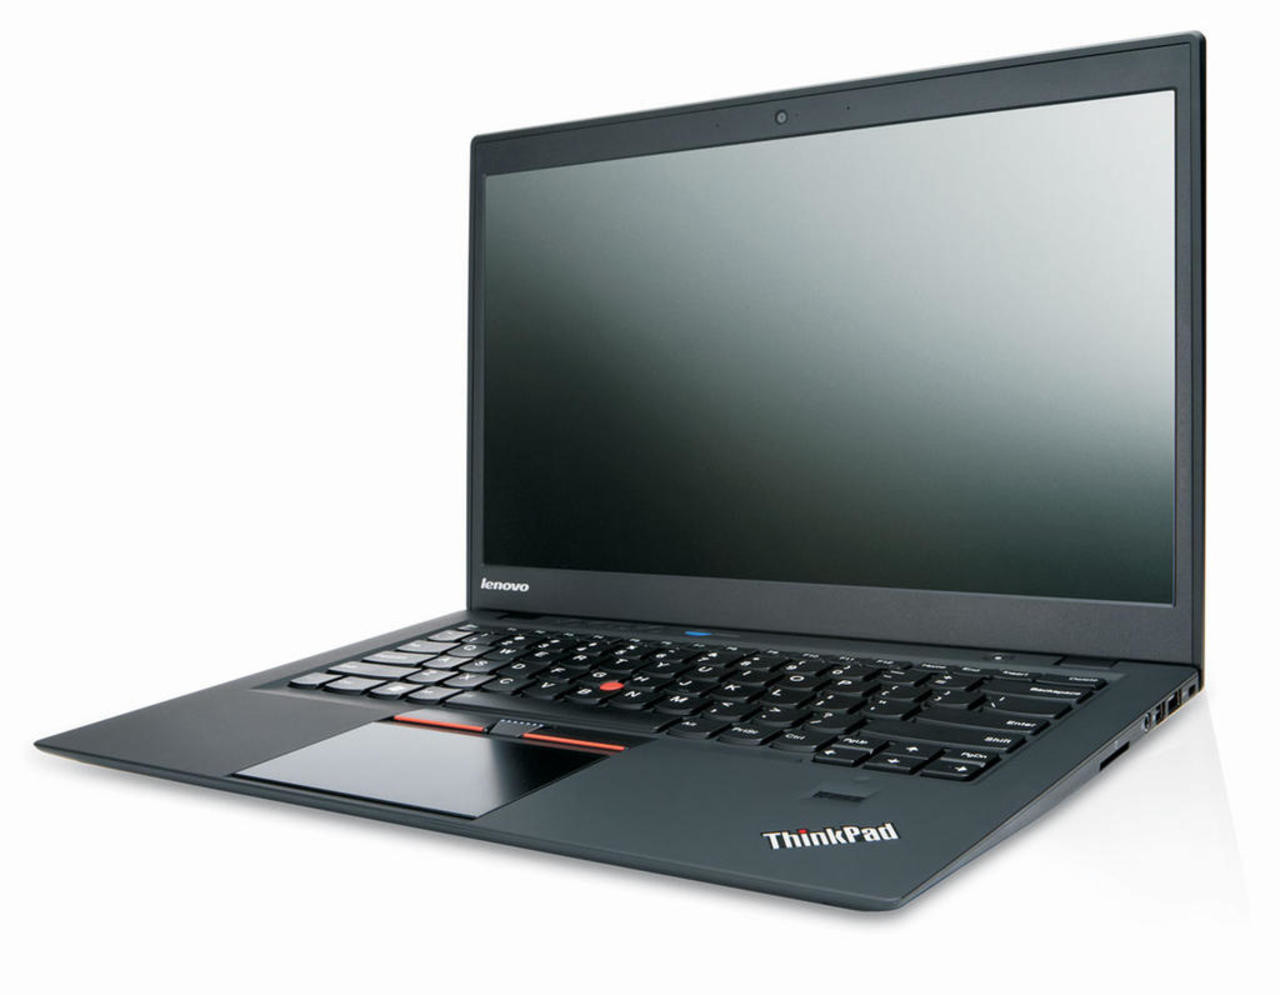 Thinkpad X1 Carbon 2012